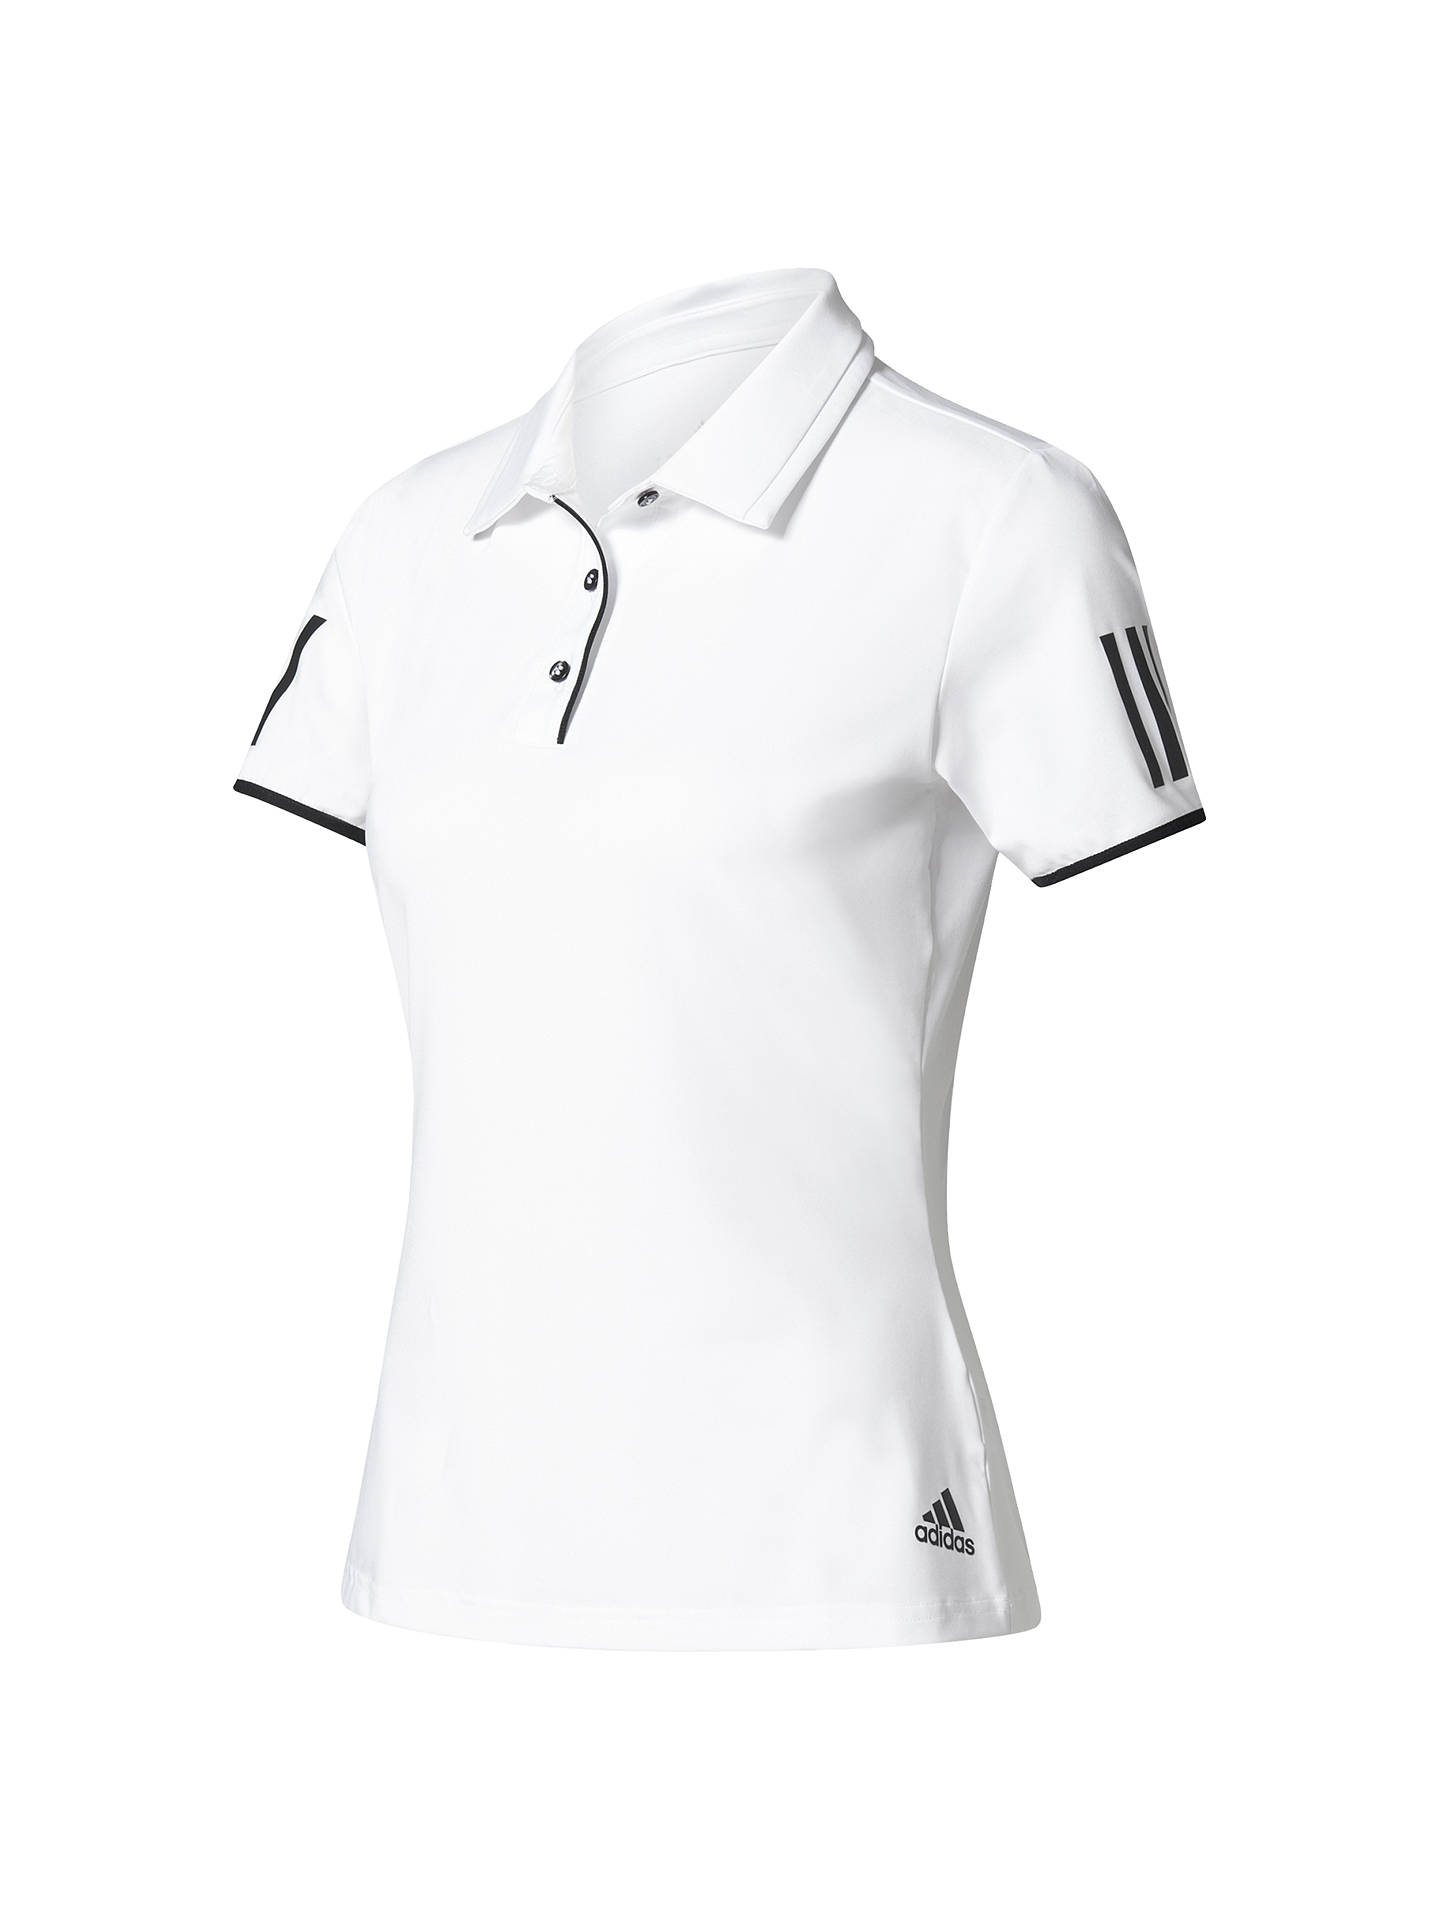 adidas polo t shirt women's